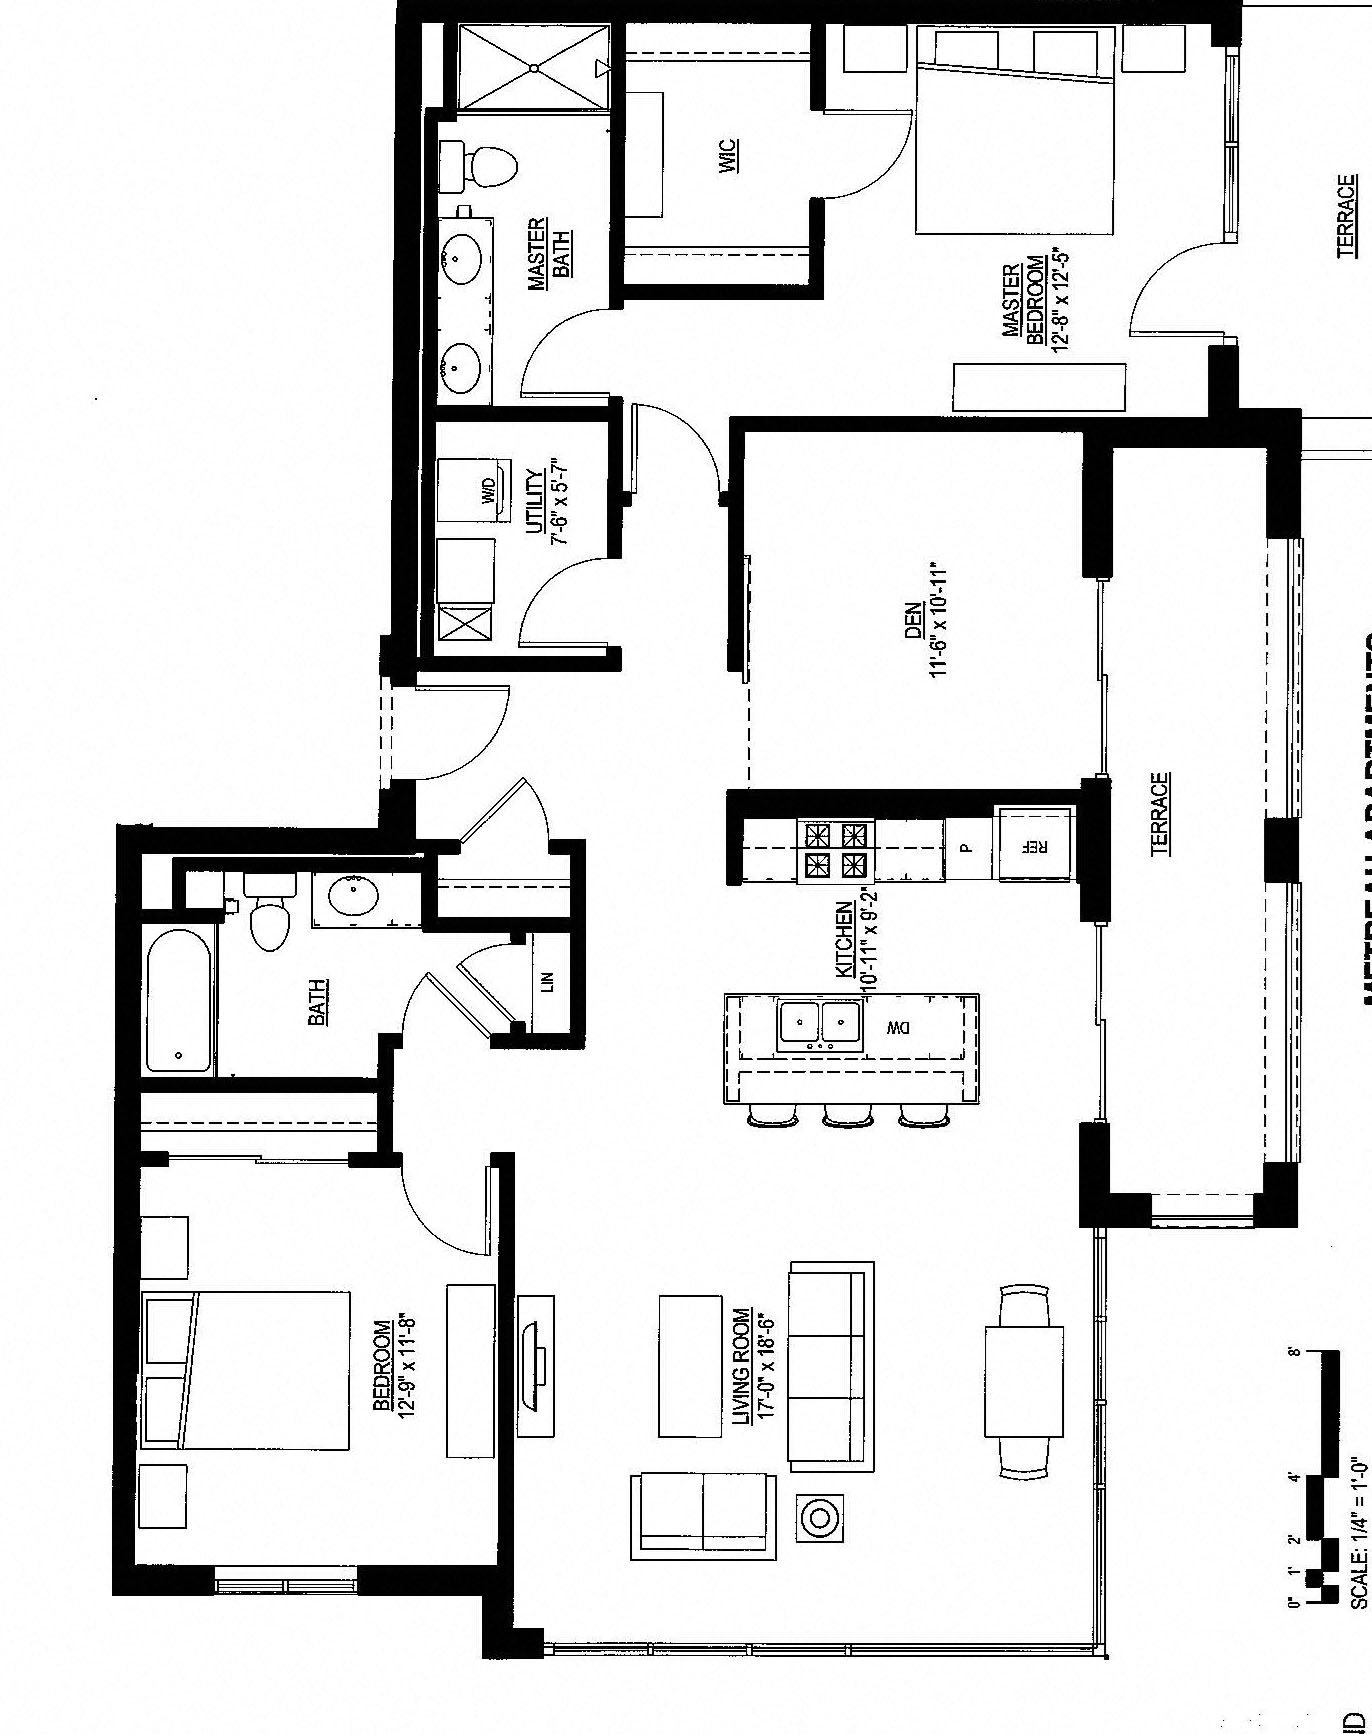 1433sf- Penthouse w/ 2 Balconies Floor Plan 11